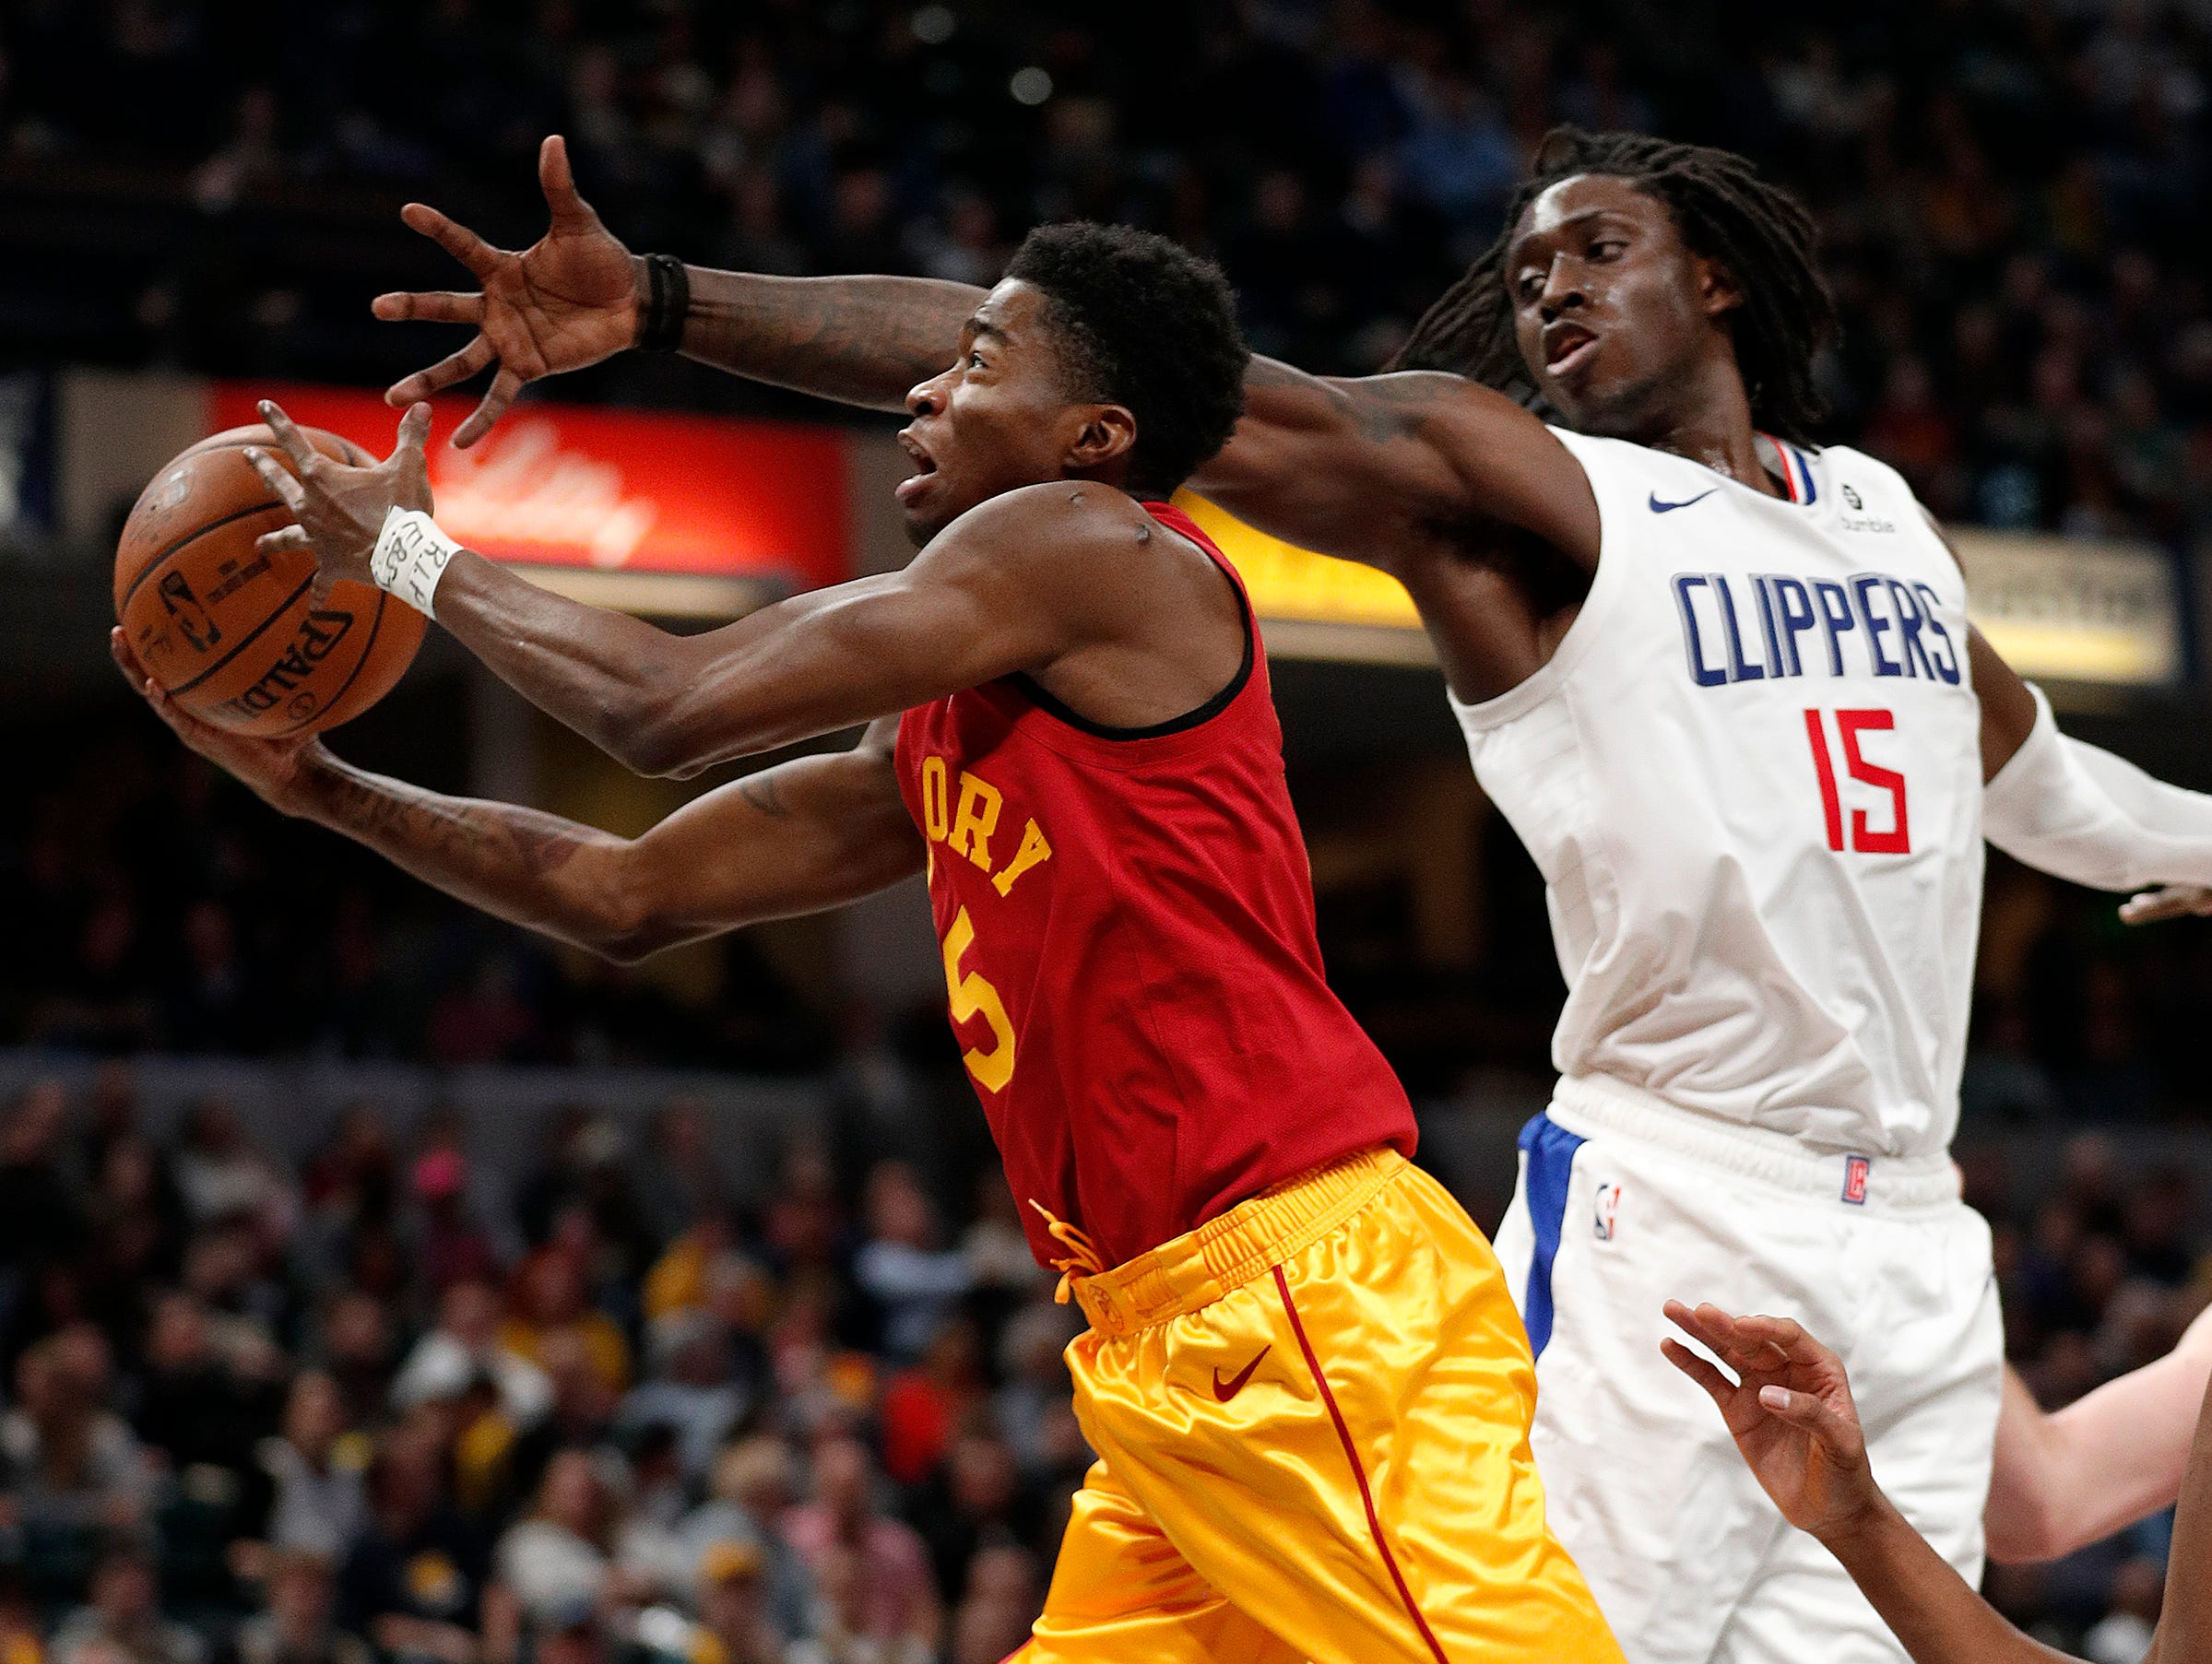 Indiana Pacers guard Edmond Sumner (5) drives by LA Clippers forward Johnathan Motley (15) in the second half of their game at Bankers Life Fieldhouse on Thursday, Feb. 7, 2019.